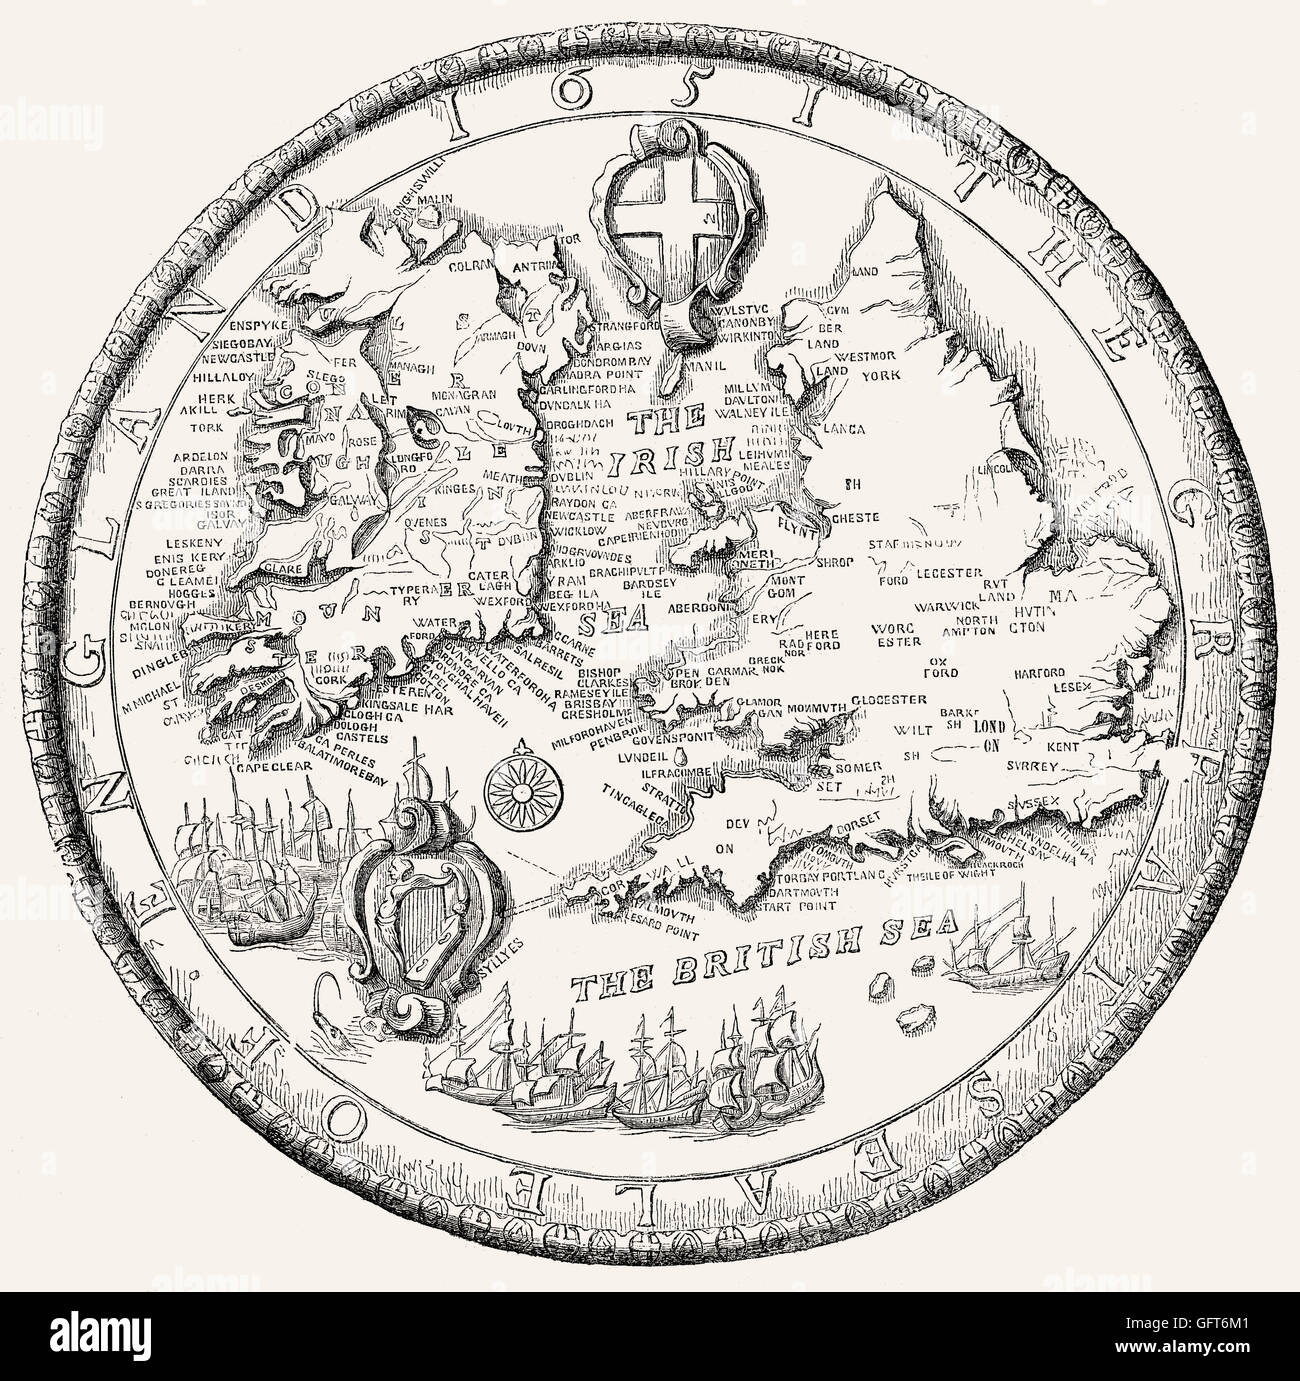 The Second Great Seal of England, 1651 - Stock Image